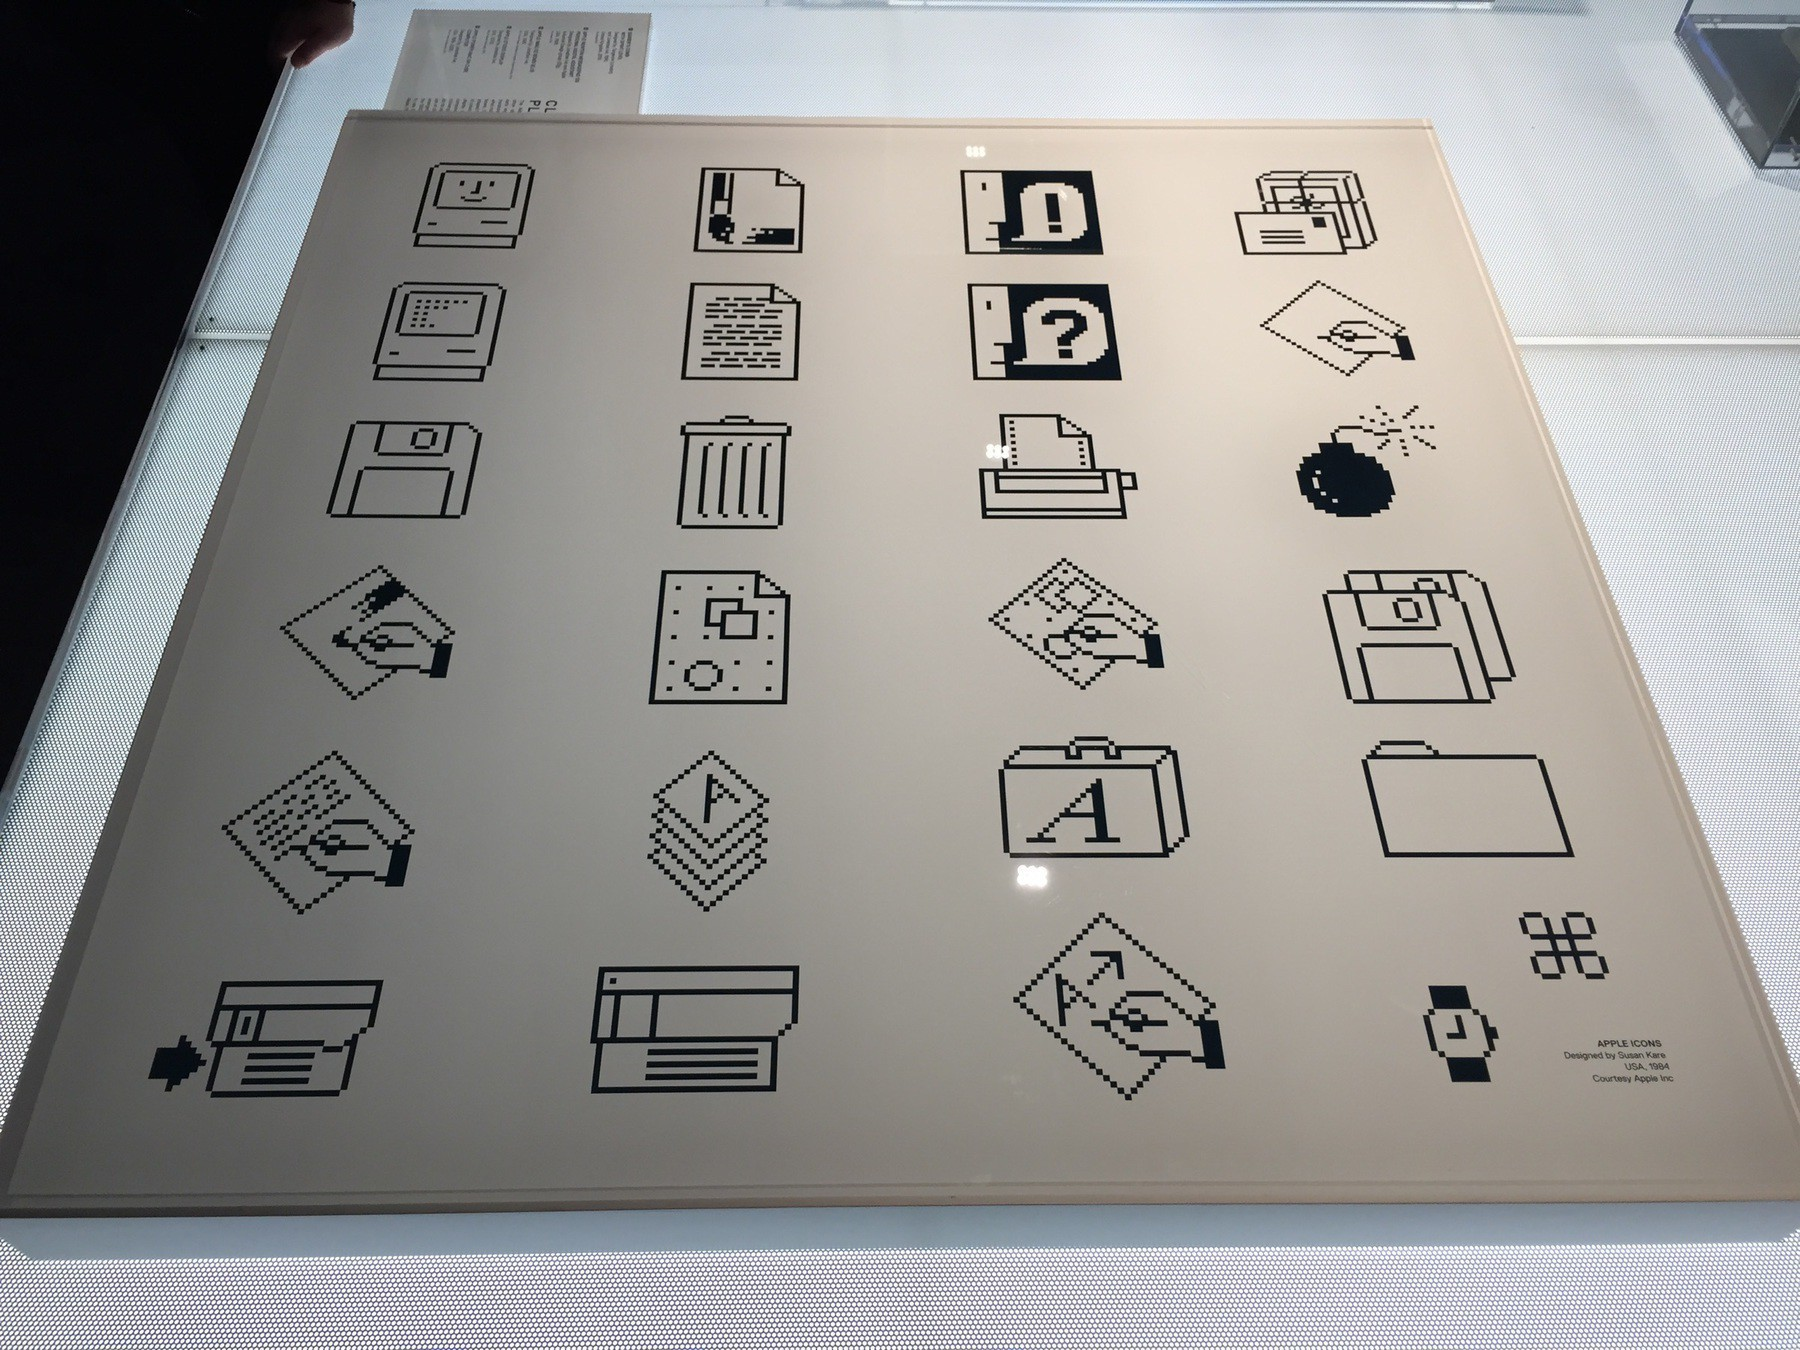 Susan Kare's icon set from Classic Mac OS in the 1980s